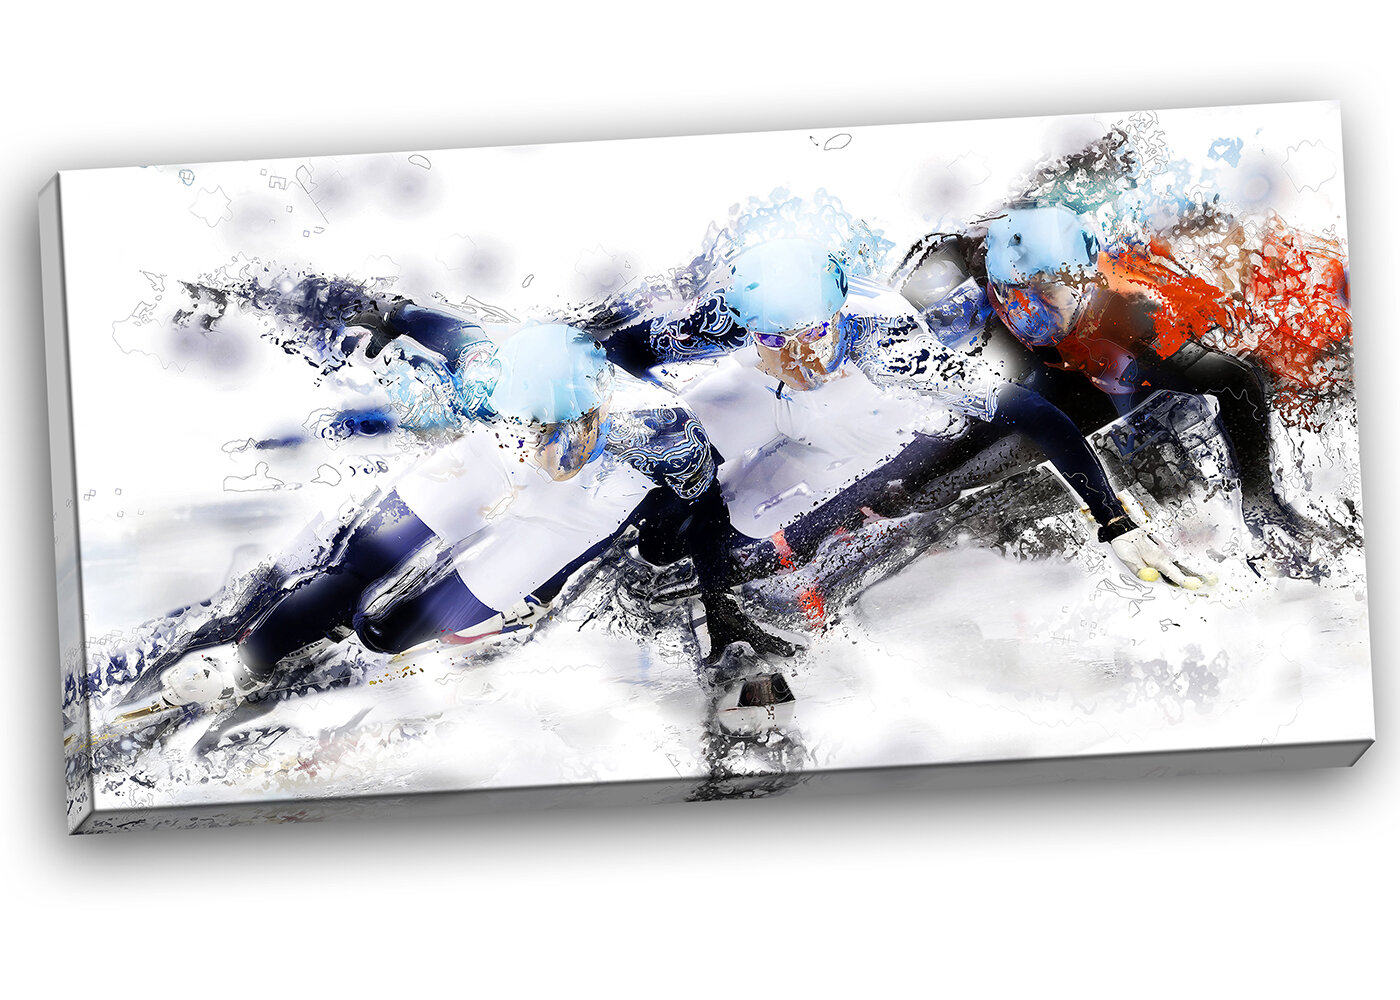 Designart Speed Skating Finish Line Graphic Art On Wrapped Canvas Wayfair